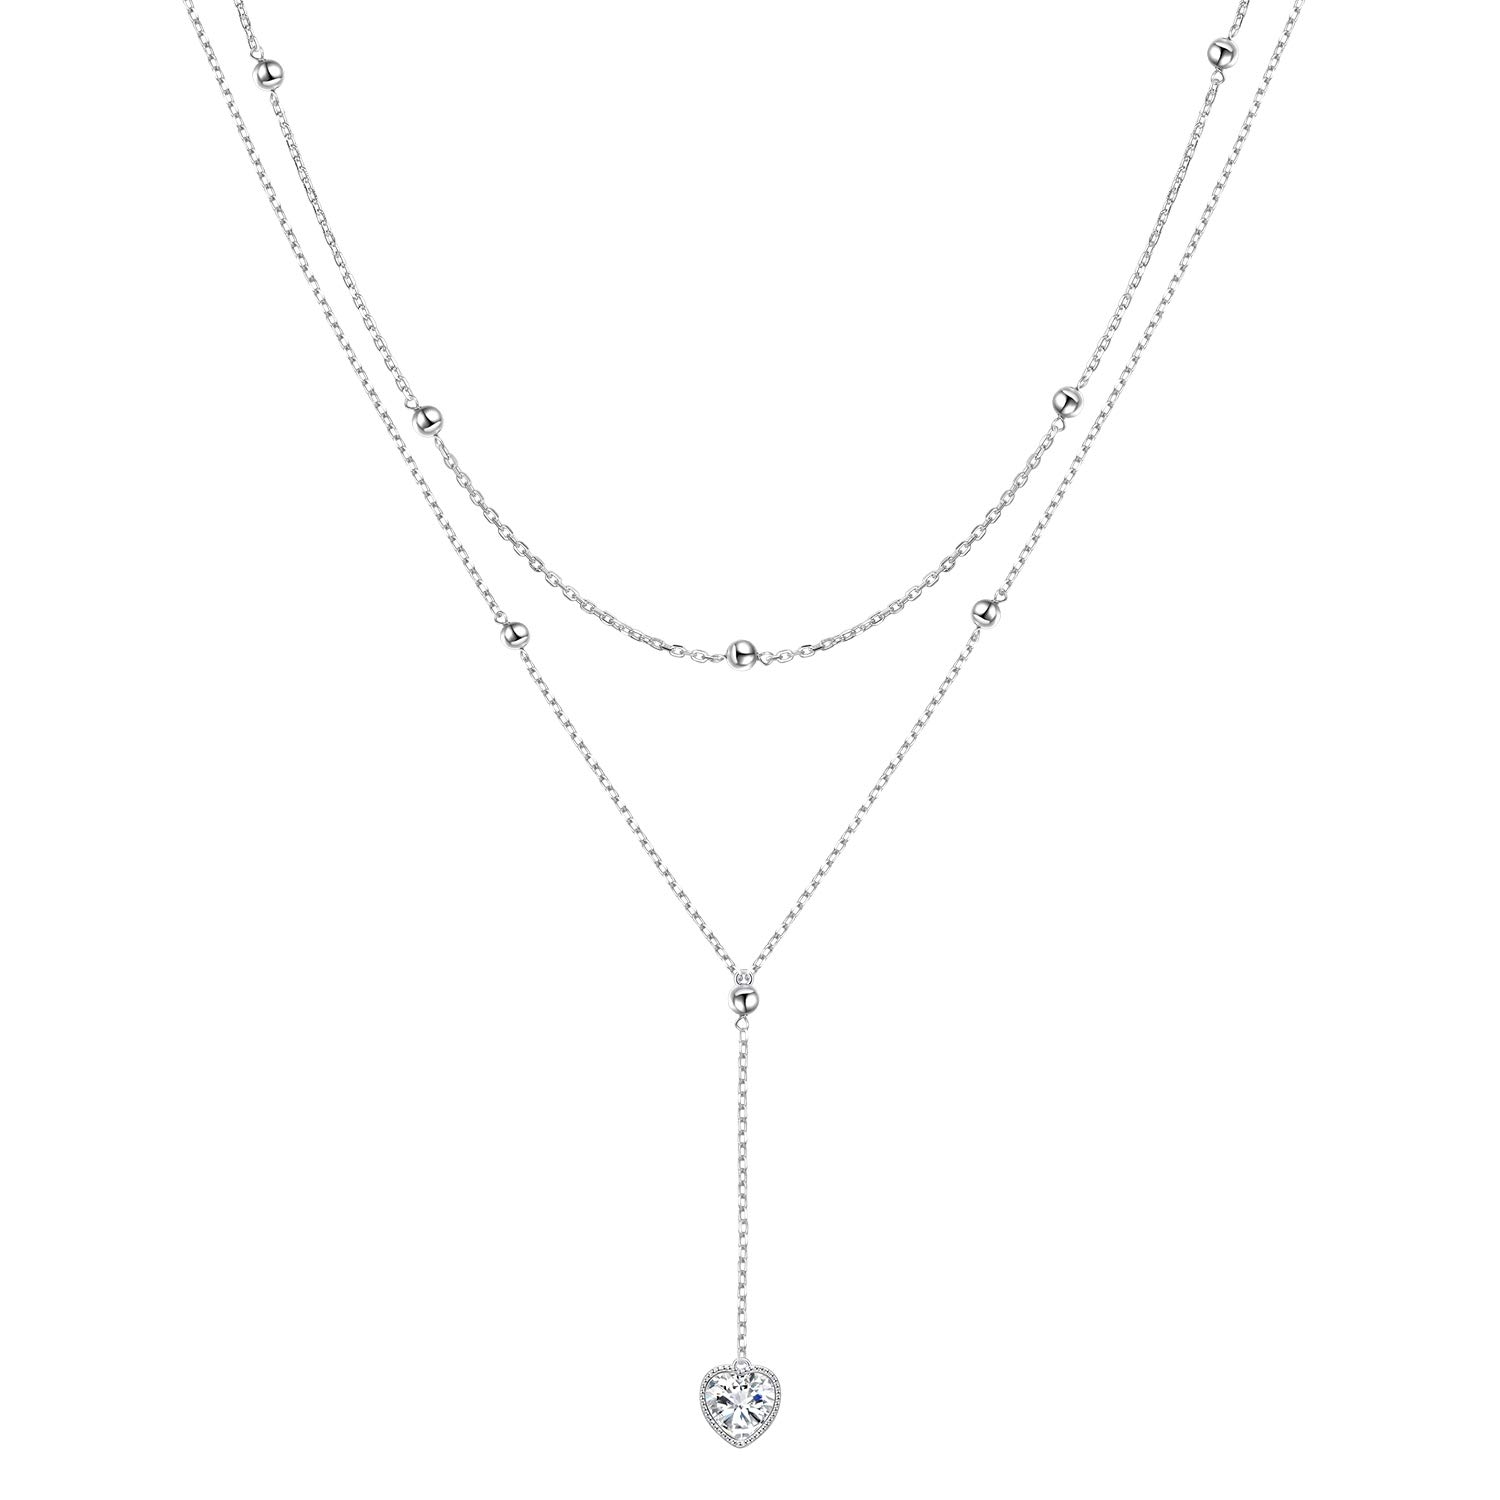 FLYOW Layered Necklace S925 Sterling Silver Teardrop Double Choker Y Lariat Necklace Gifts for Women